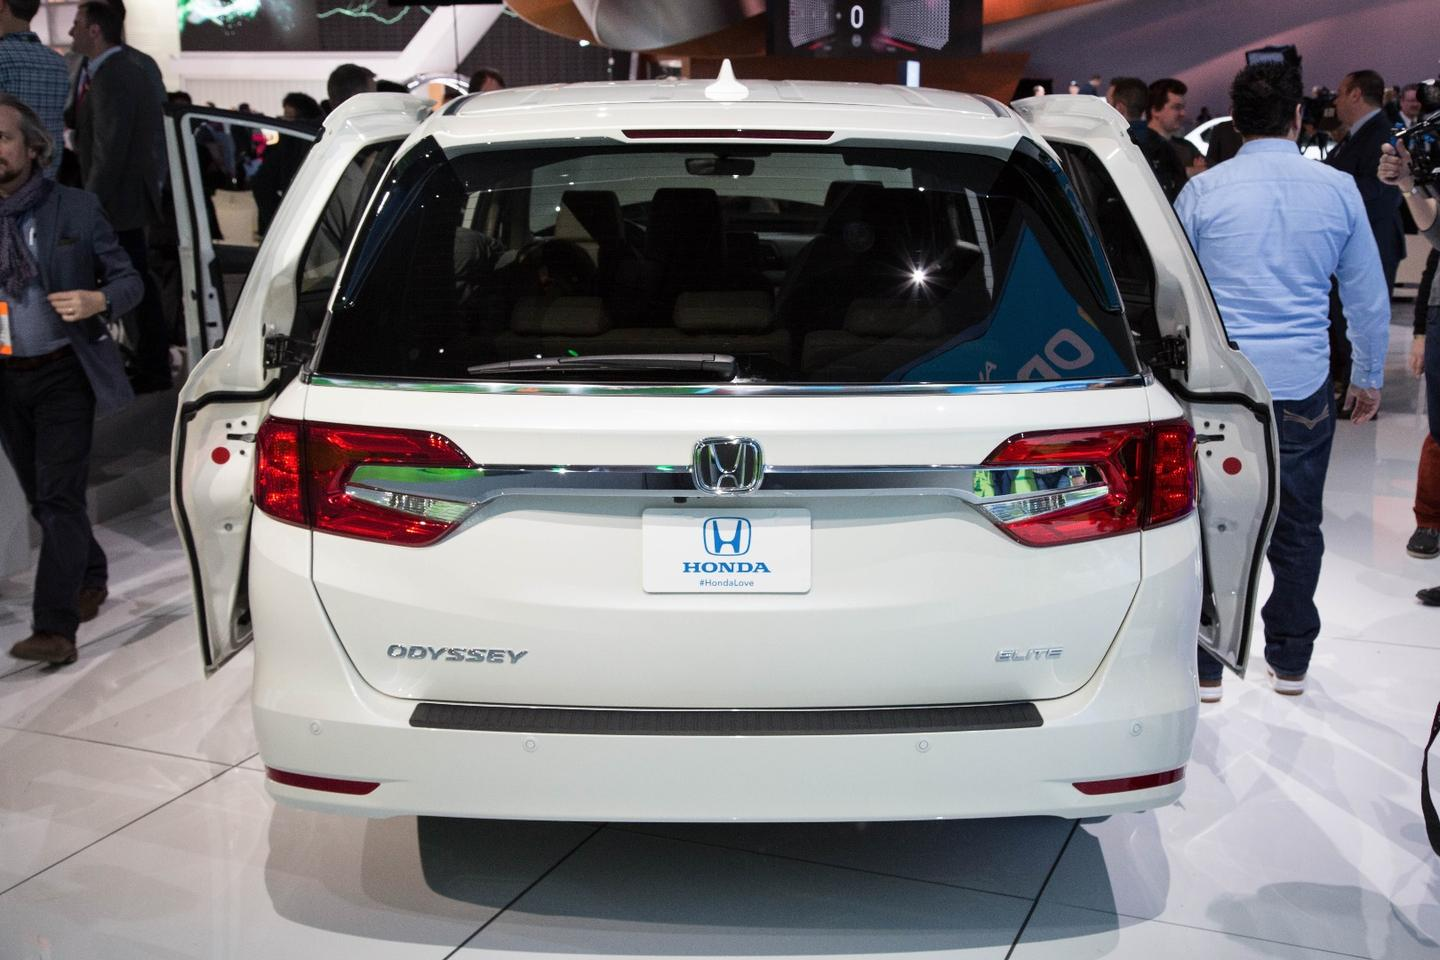 The 2018 Honda Odyssey from the rear shows LED taillights and an available new hands-free power tailgate with foot activation